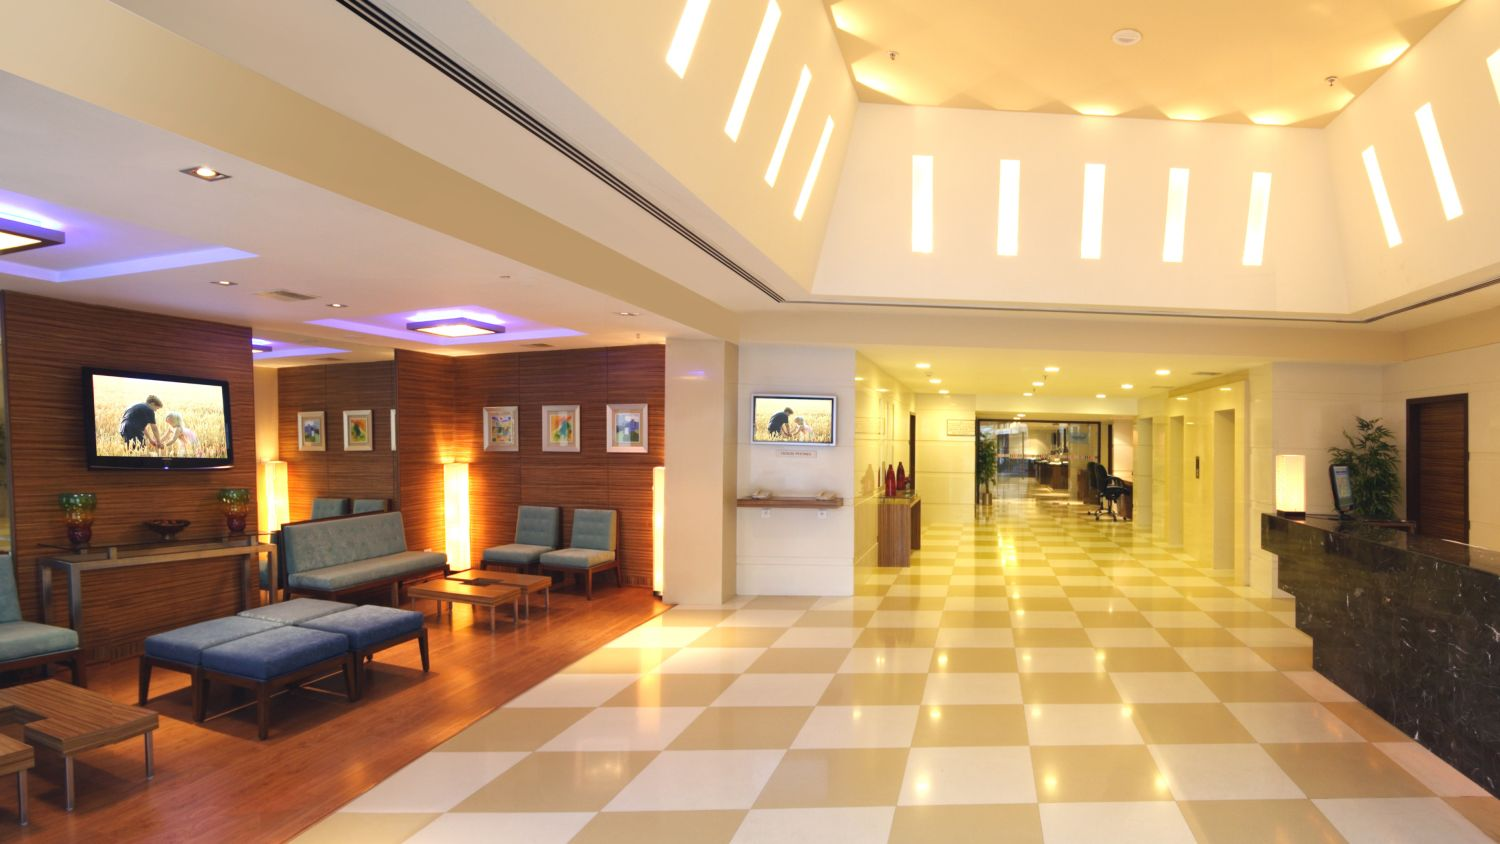 Lobby1 at Aditya Hometel Hyderabad, hotels in hyderabad